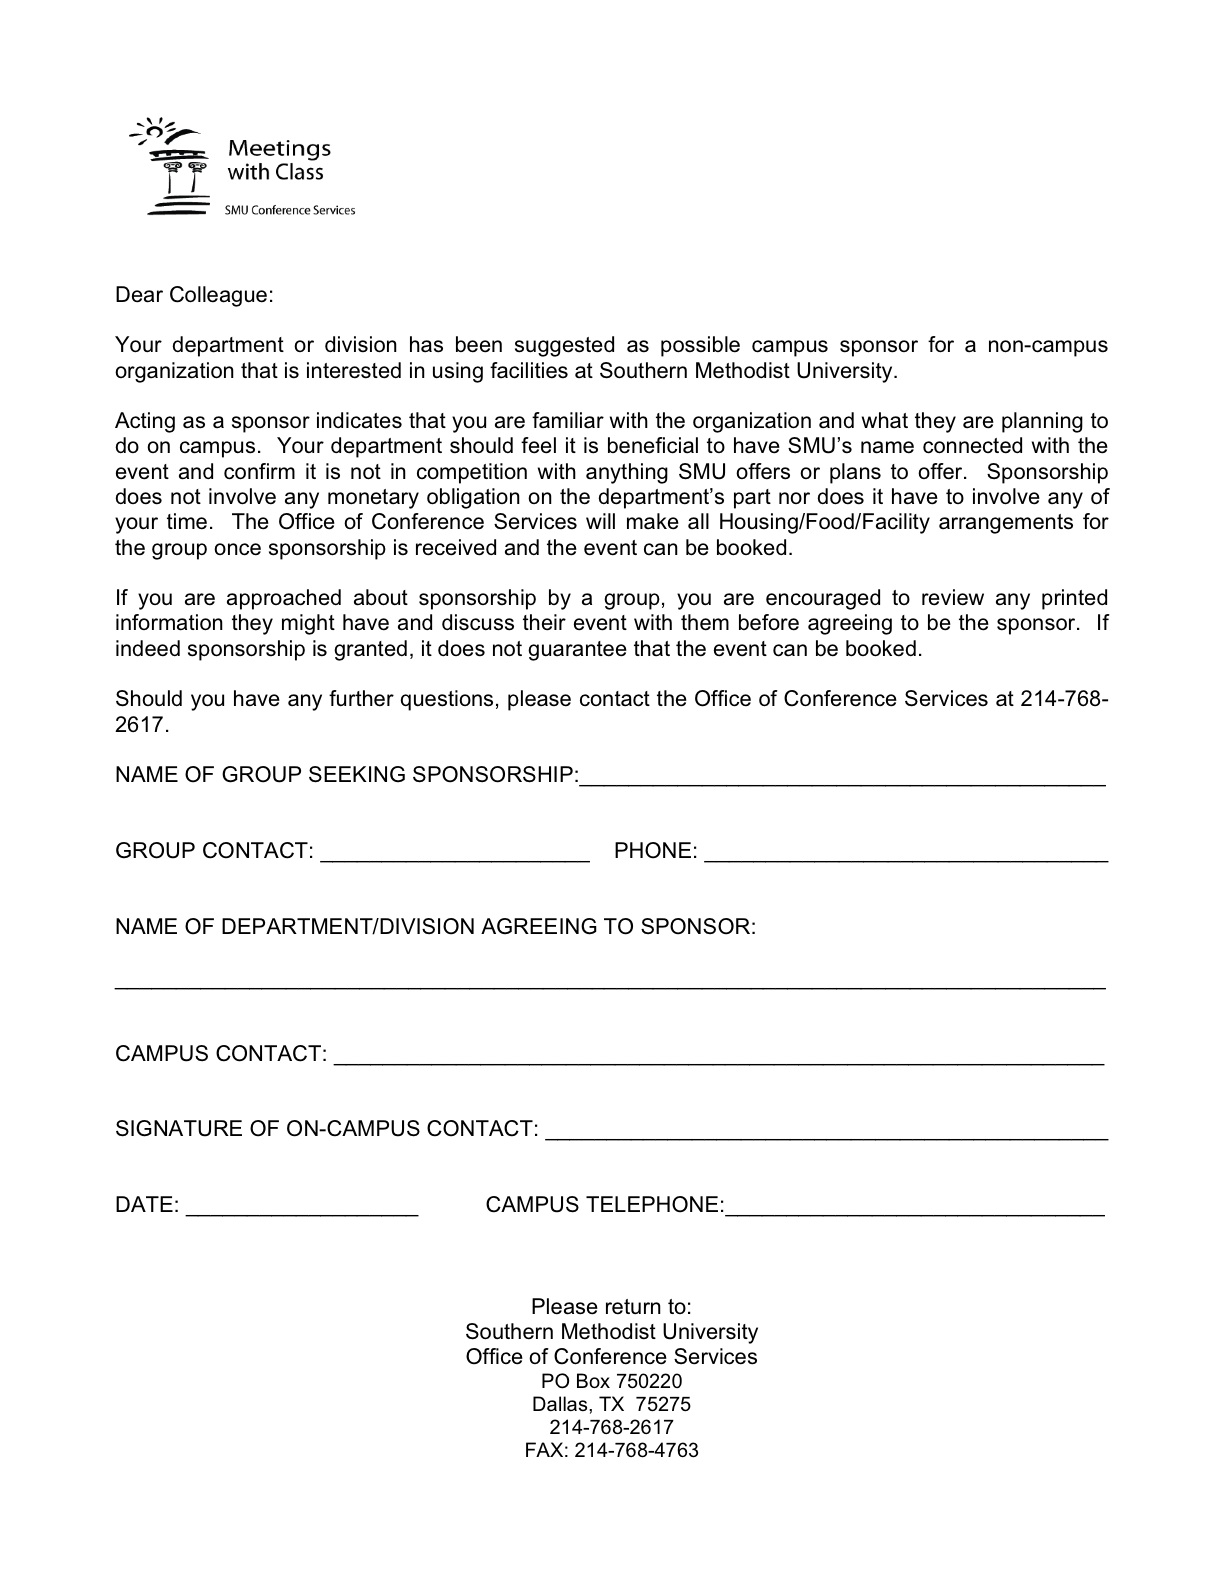 Medical Liability Form For Adults